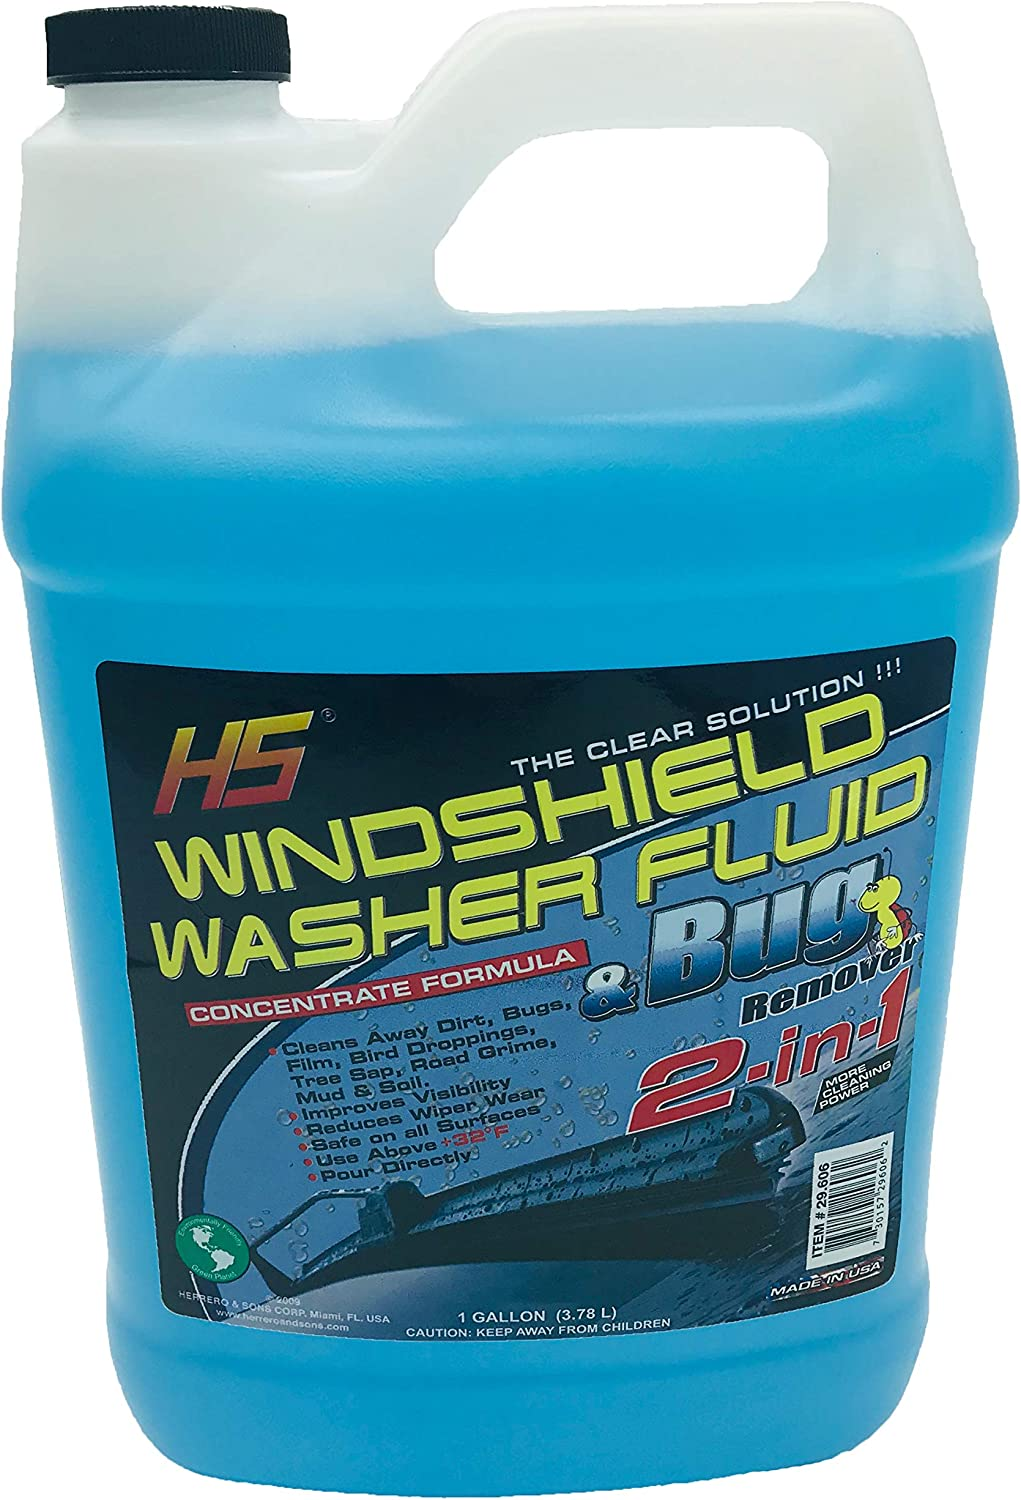 HS 29.606 Bug Wash Windshield Washer Fluid, 1 Gal (3.78 Liters)